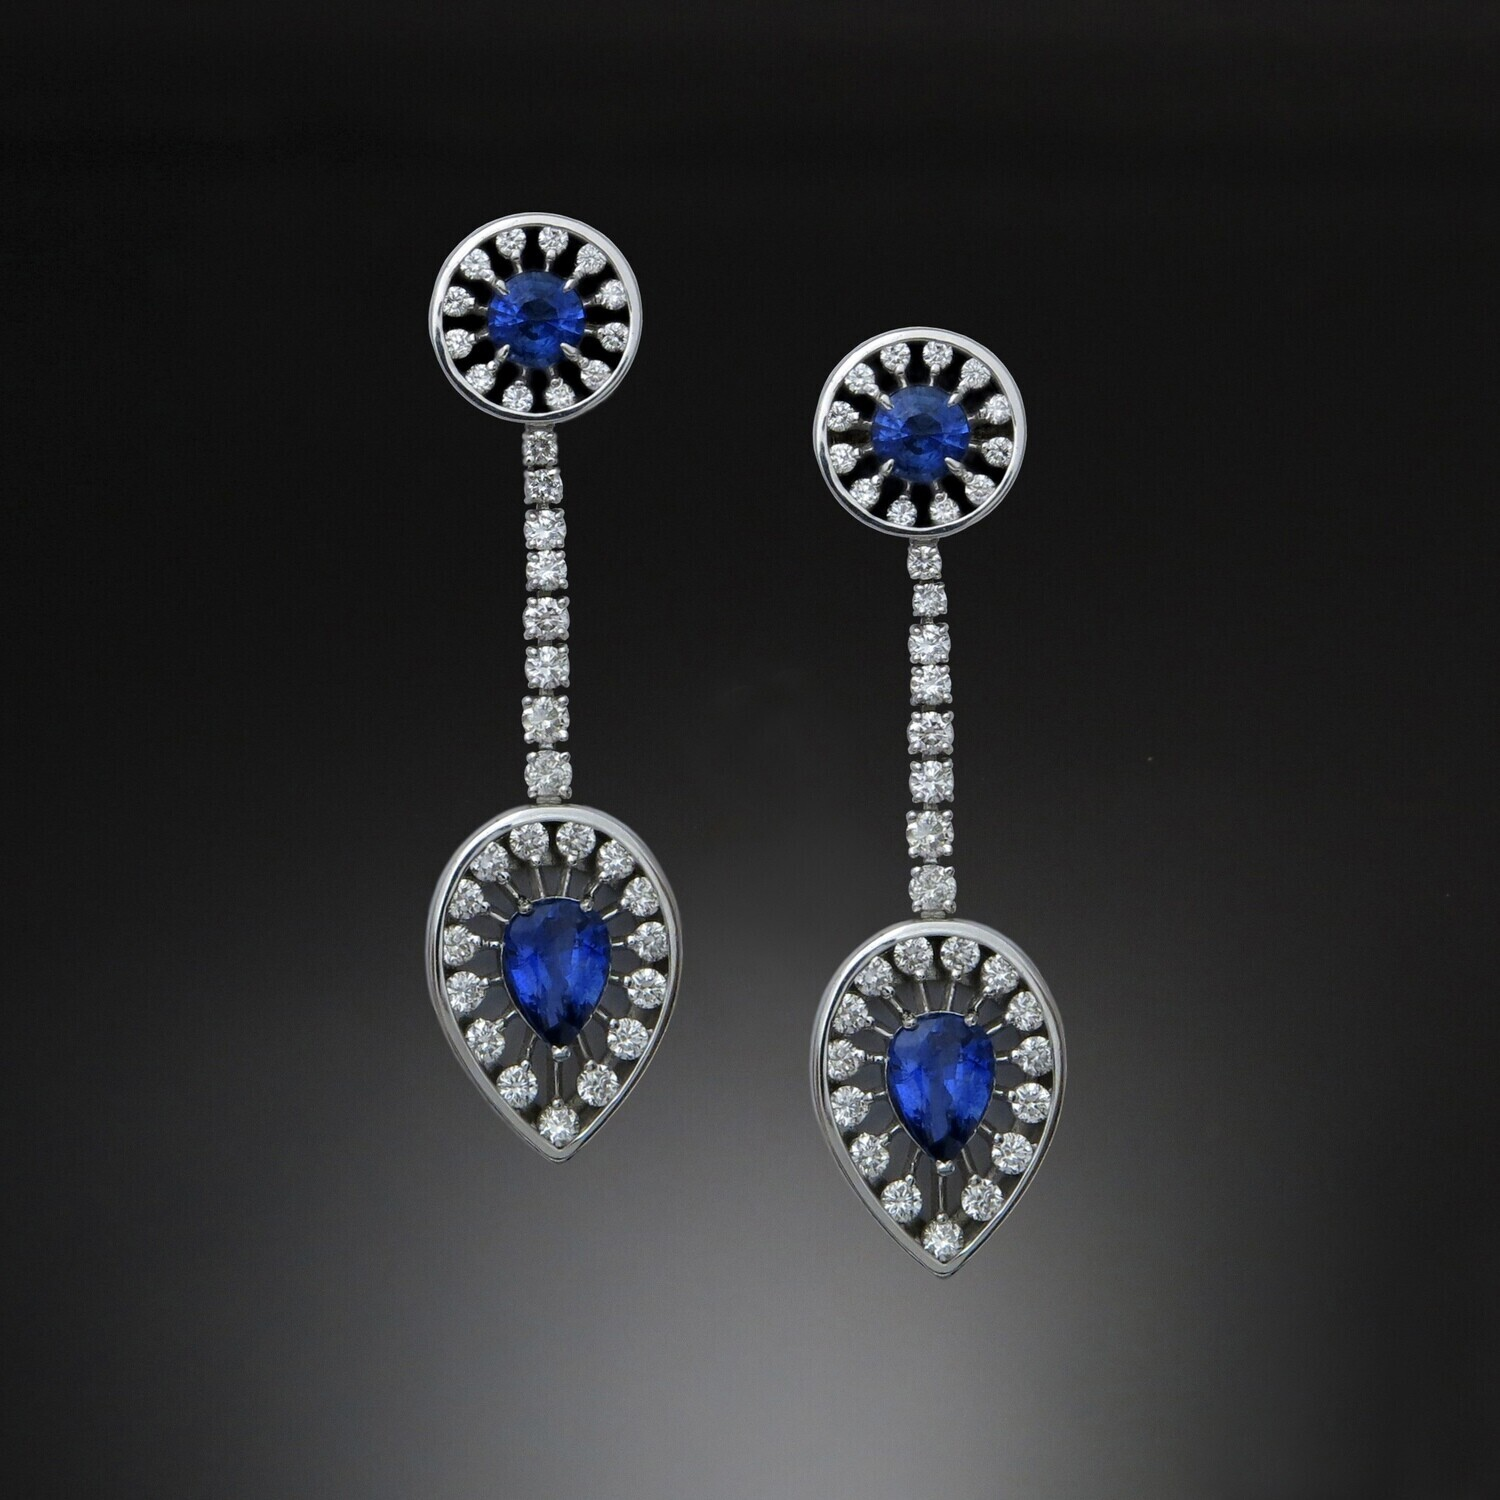 14K Gold Earrings with Blue Sapphires and Diamonds, SF001E